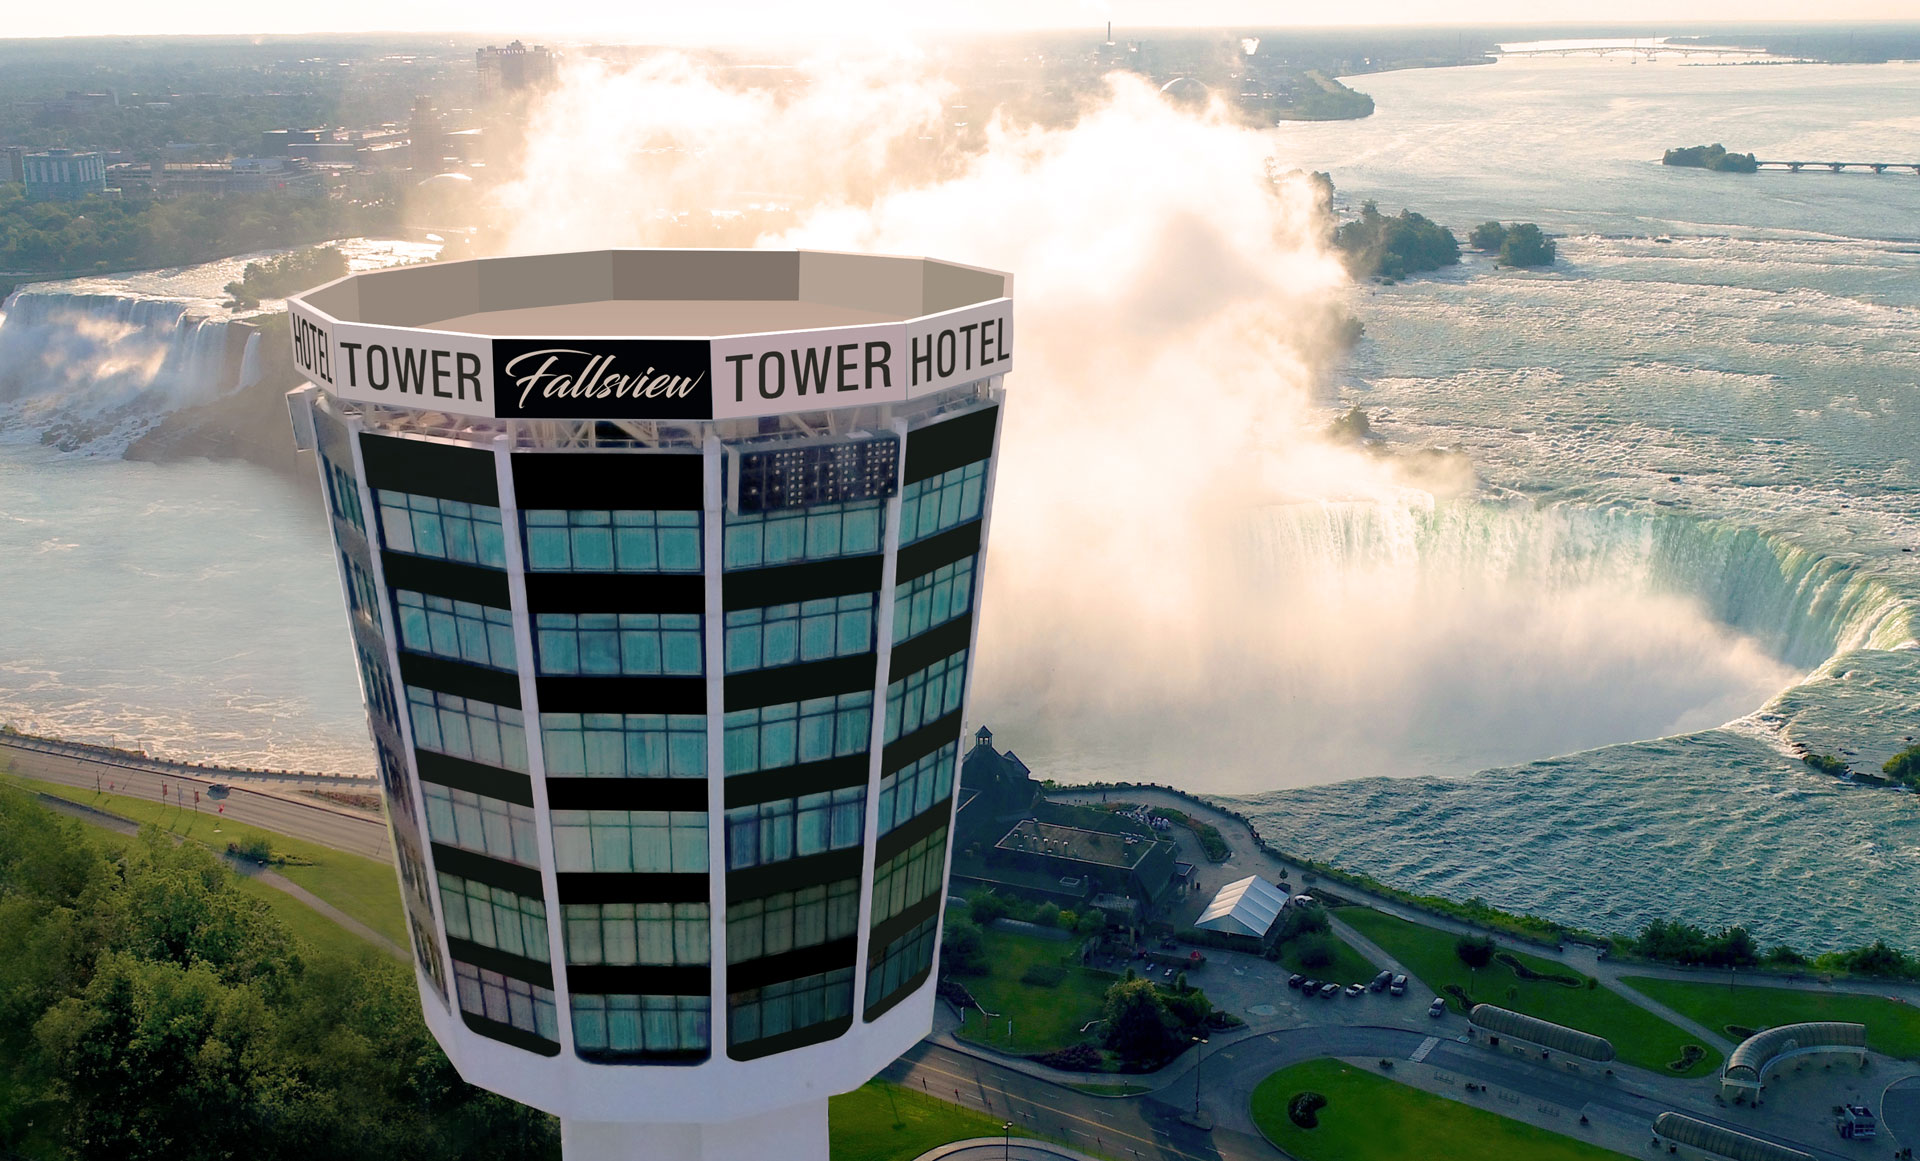 Fallsview Tower Hotel